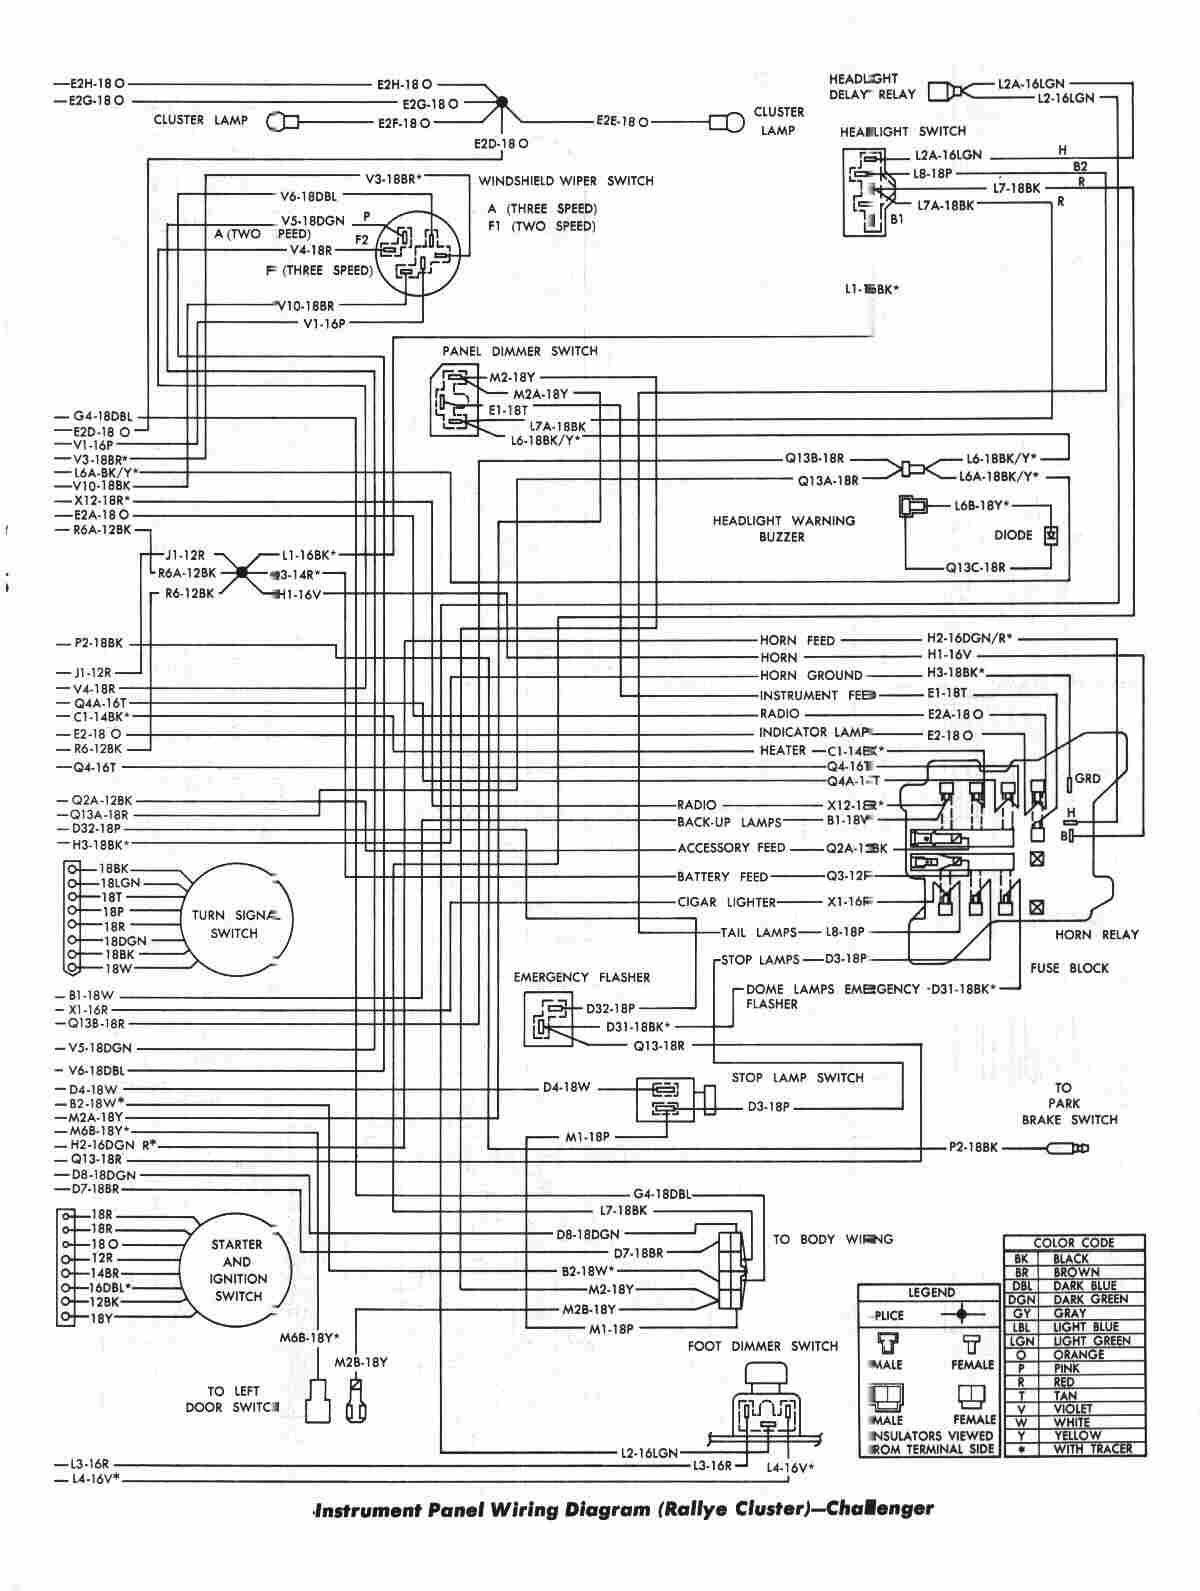 Plc Panel Wiring Diagram Bookingritzcarlton Info 2012 Dodge Charger Diagram Dodge Charger